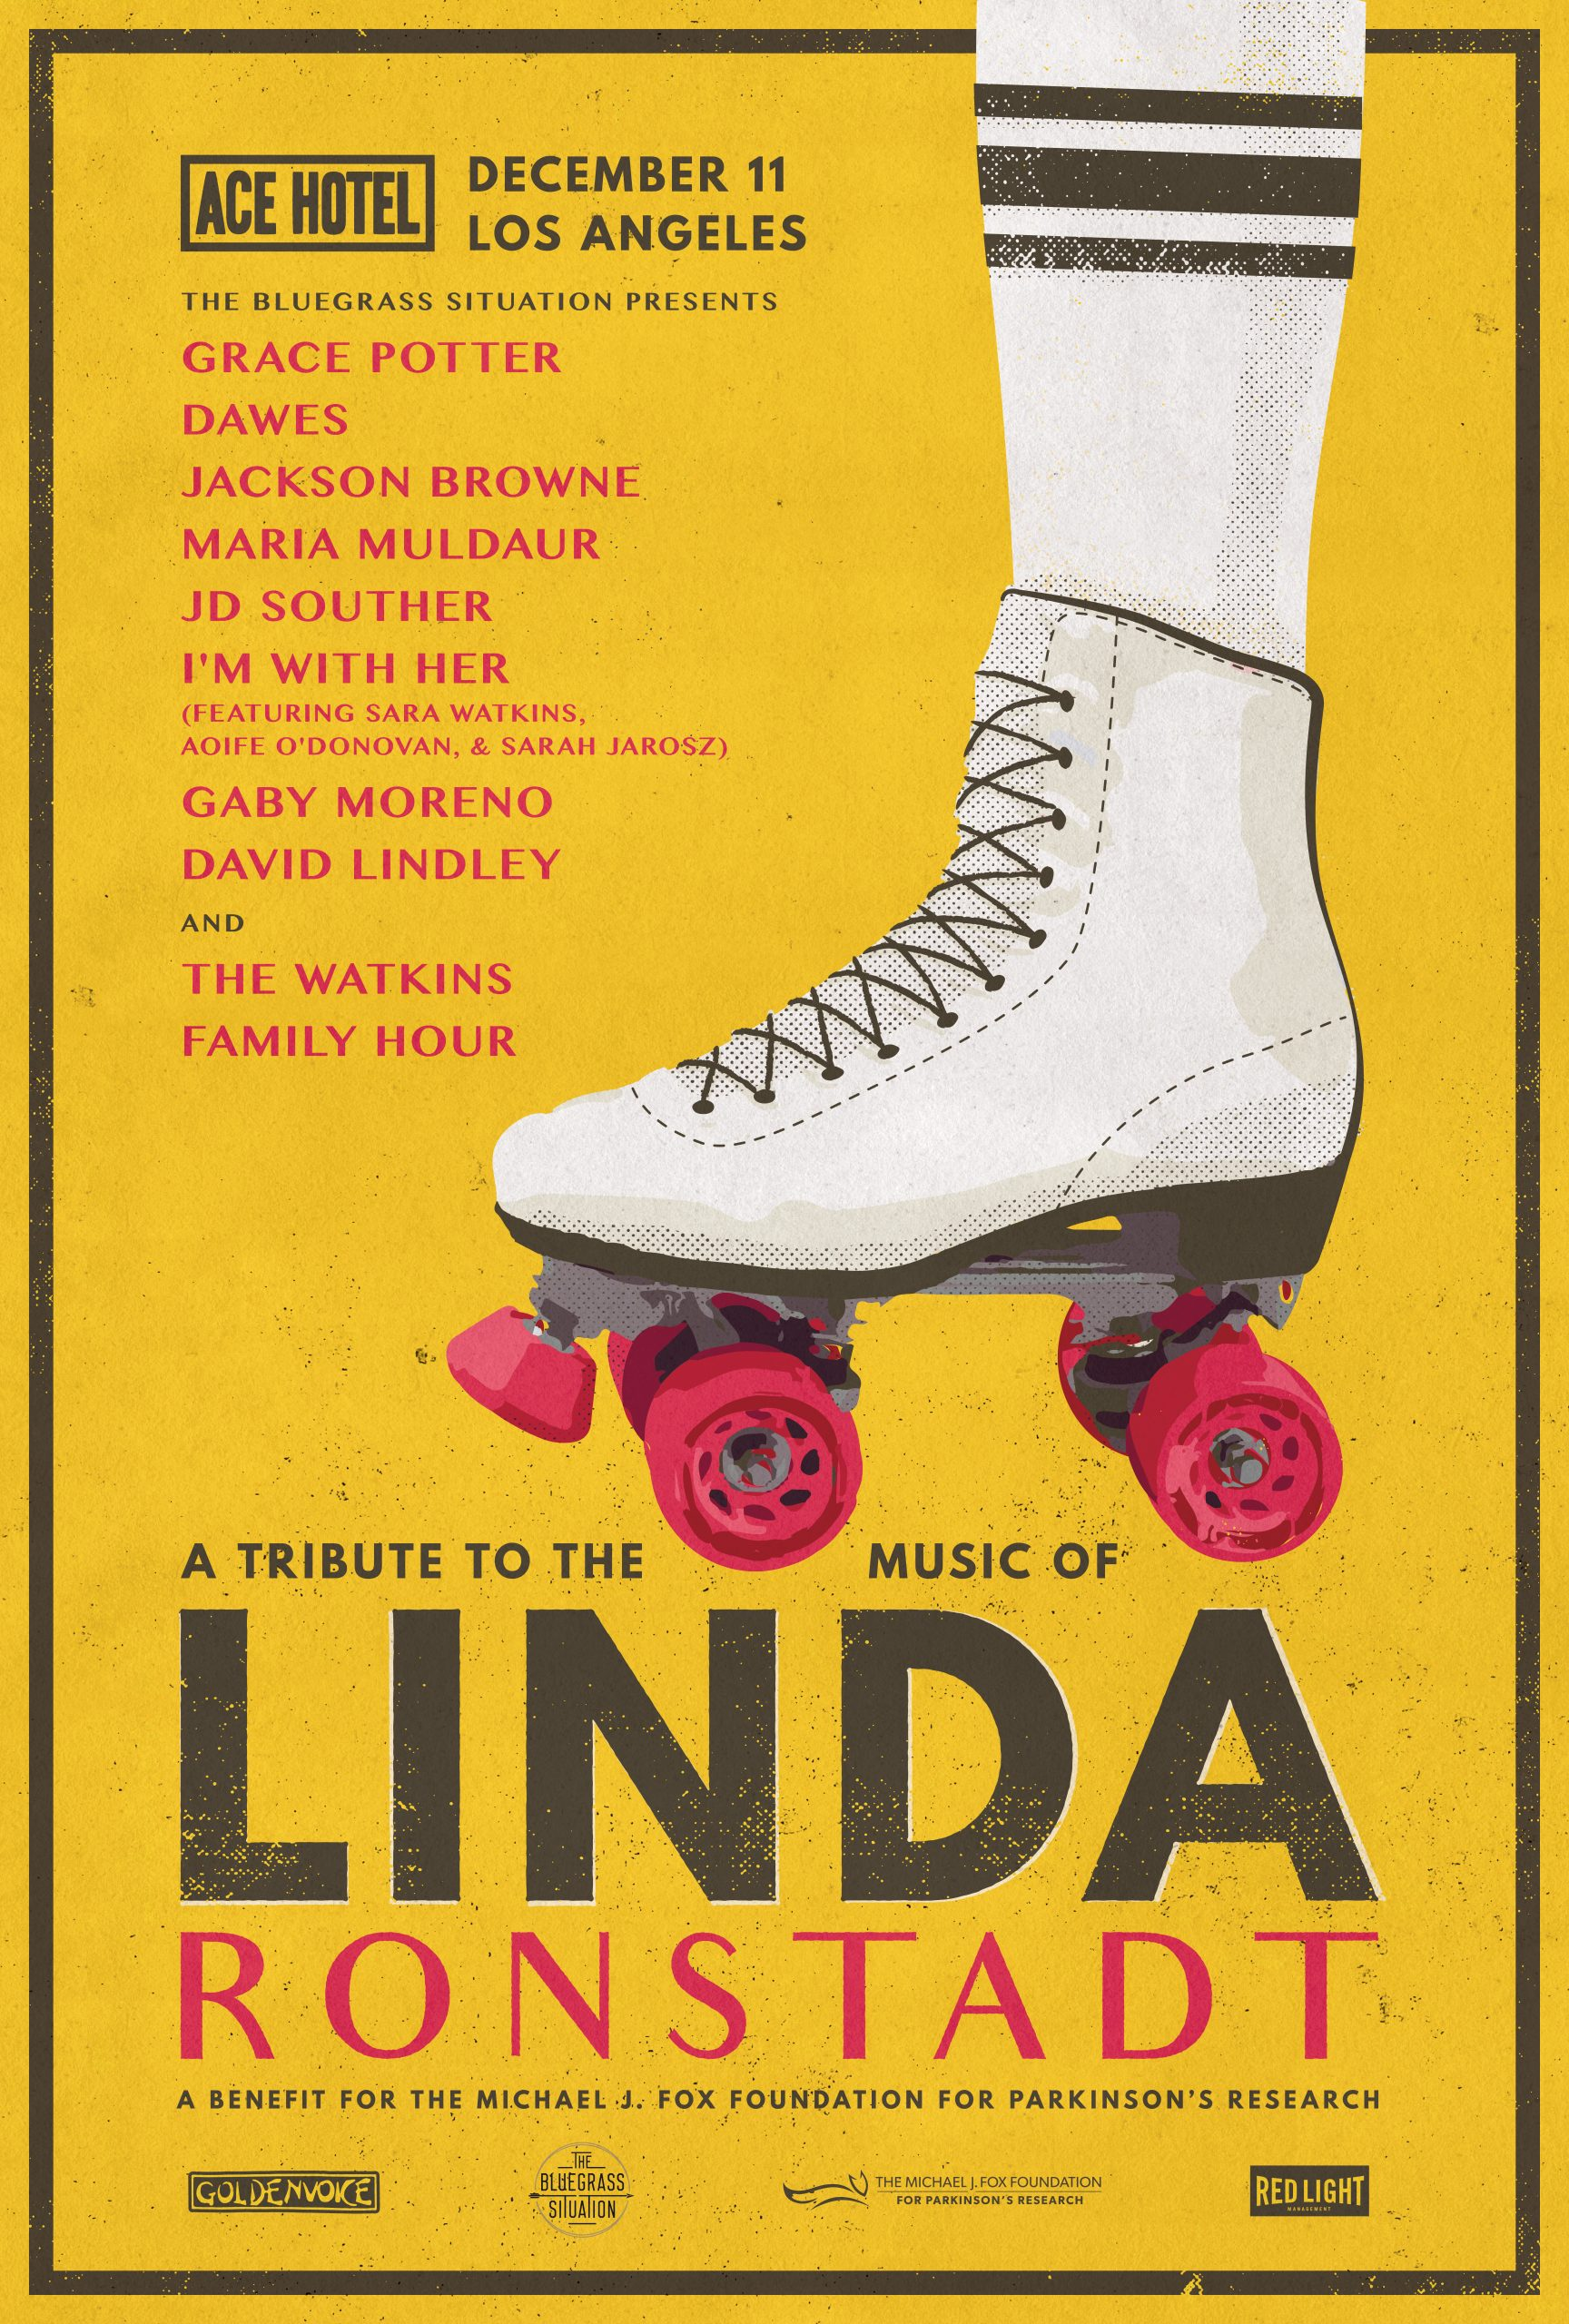 Announcing the Bluegrass Situation Presents: A Tribute to the Music of Linda Ronstadt